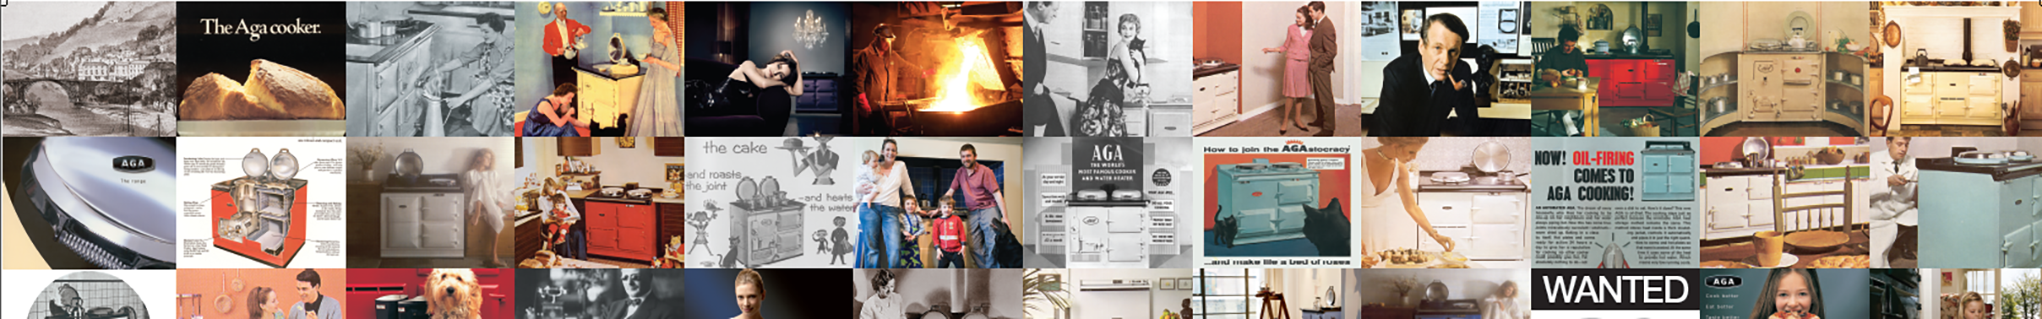 Montage of AGA advertising images